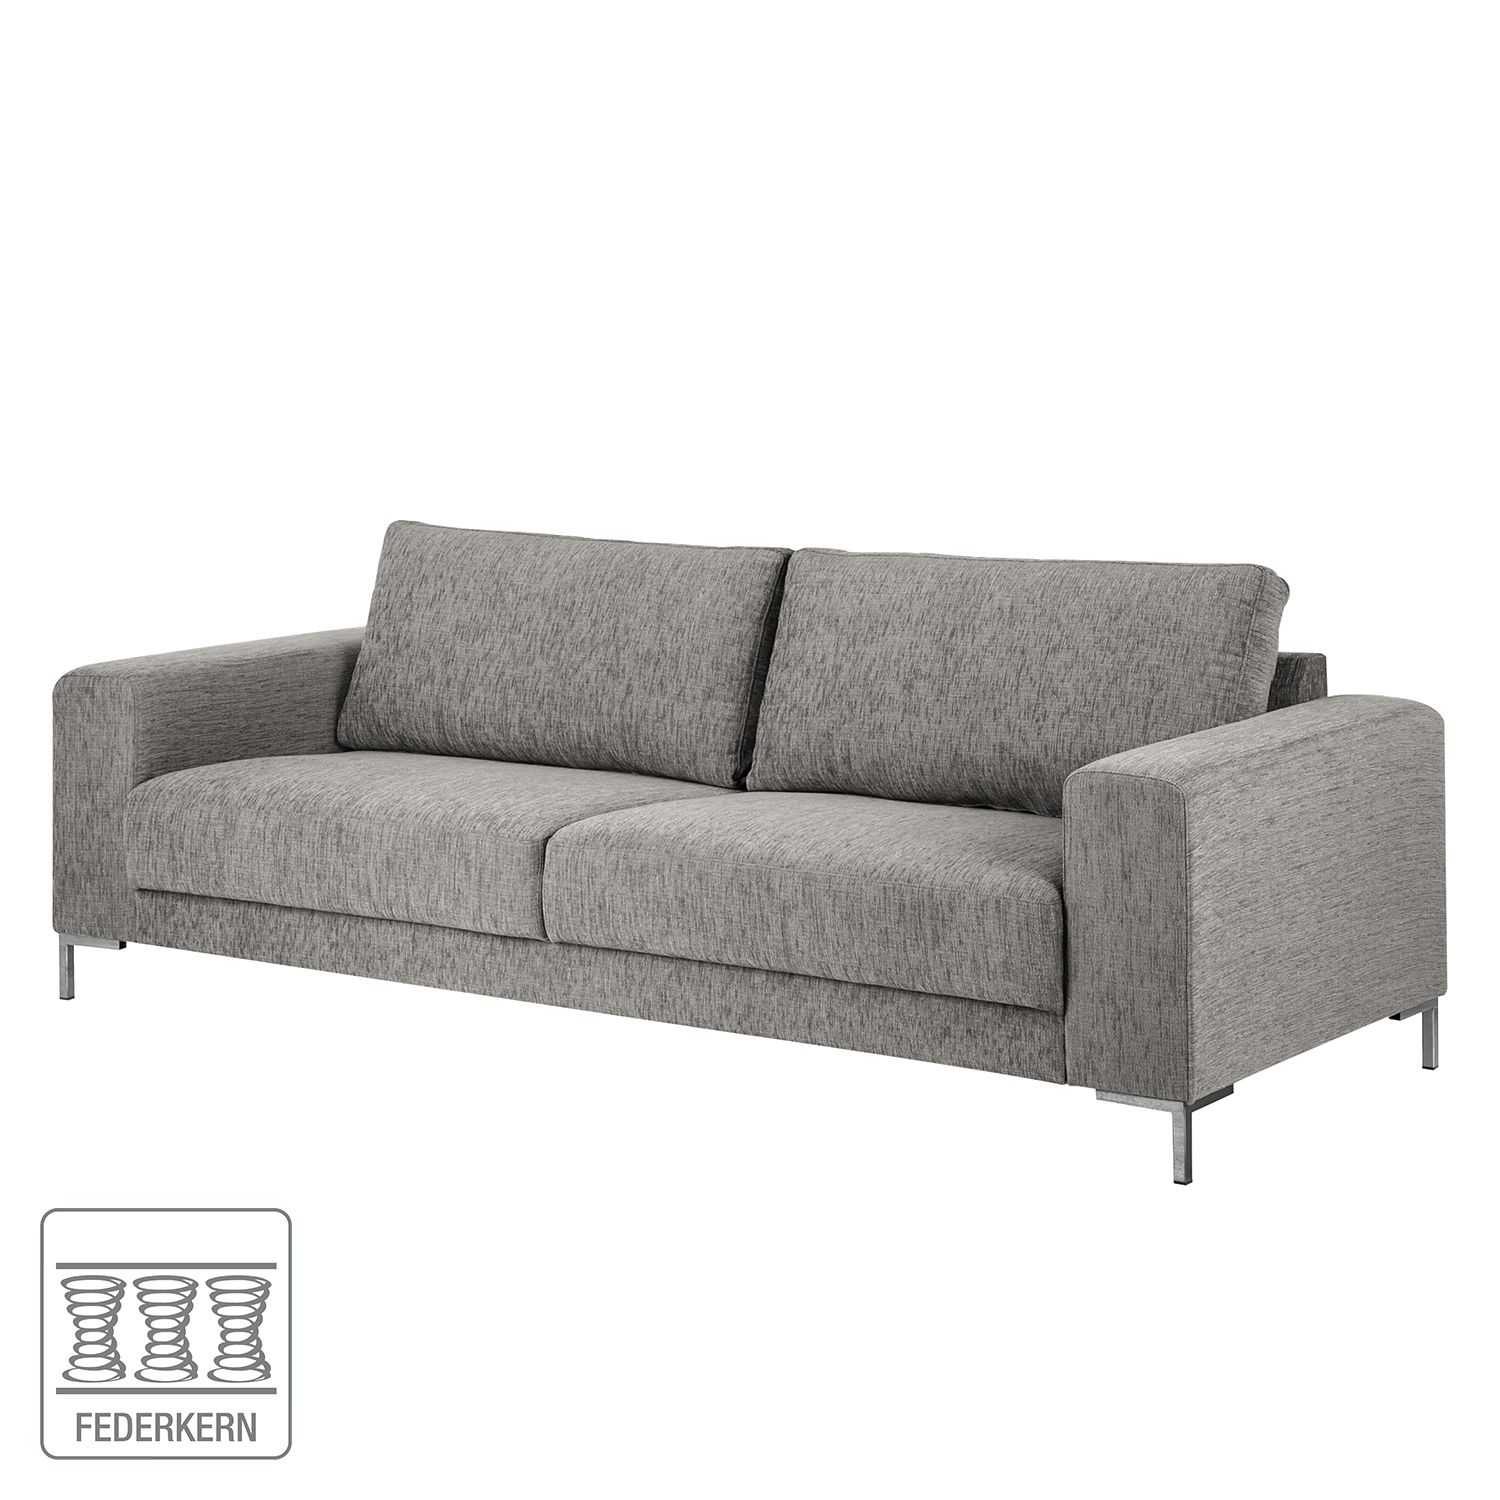 affordable sofa bed metro manila dfs electric recliner sofas 3 sitzer mit federkern latest